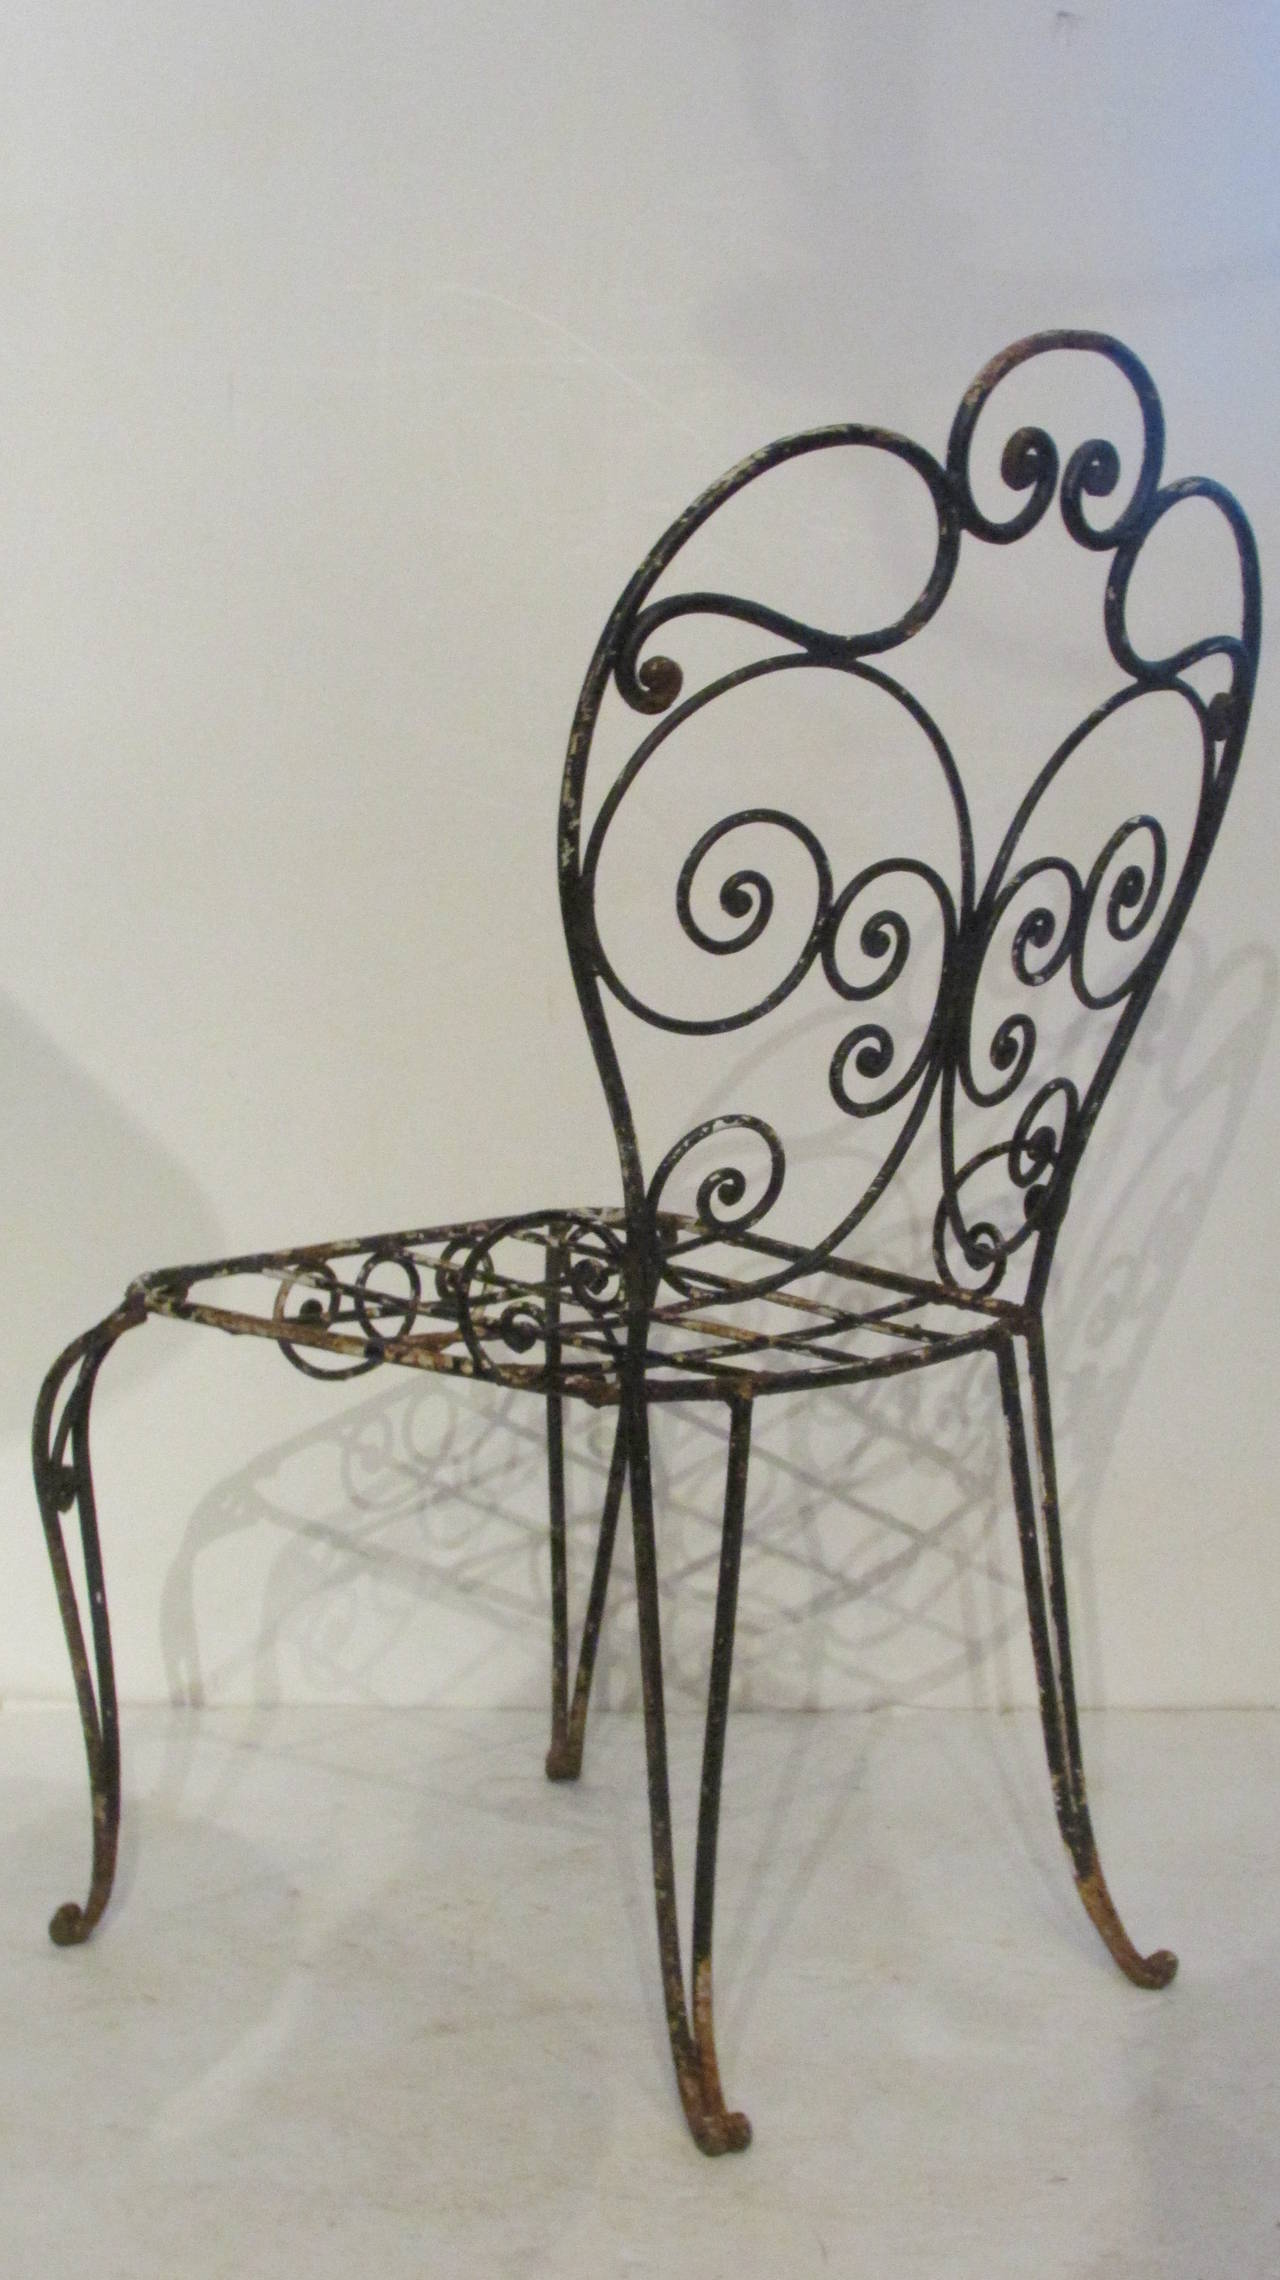 1940s French Iron Garden Chair For Sale 1